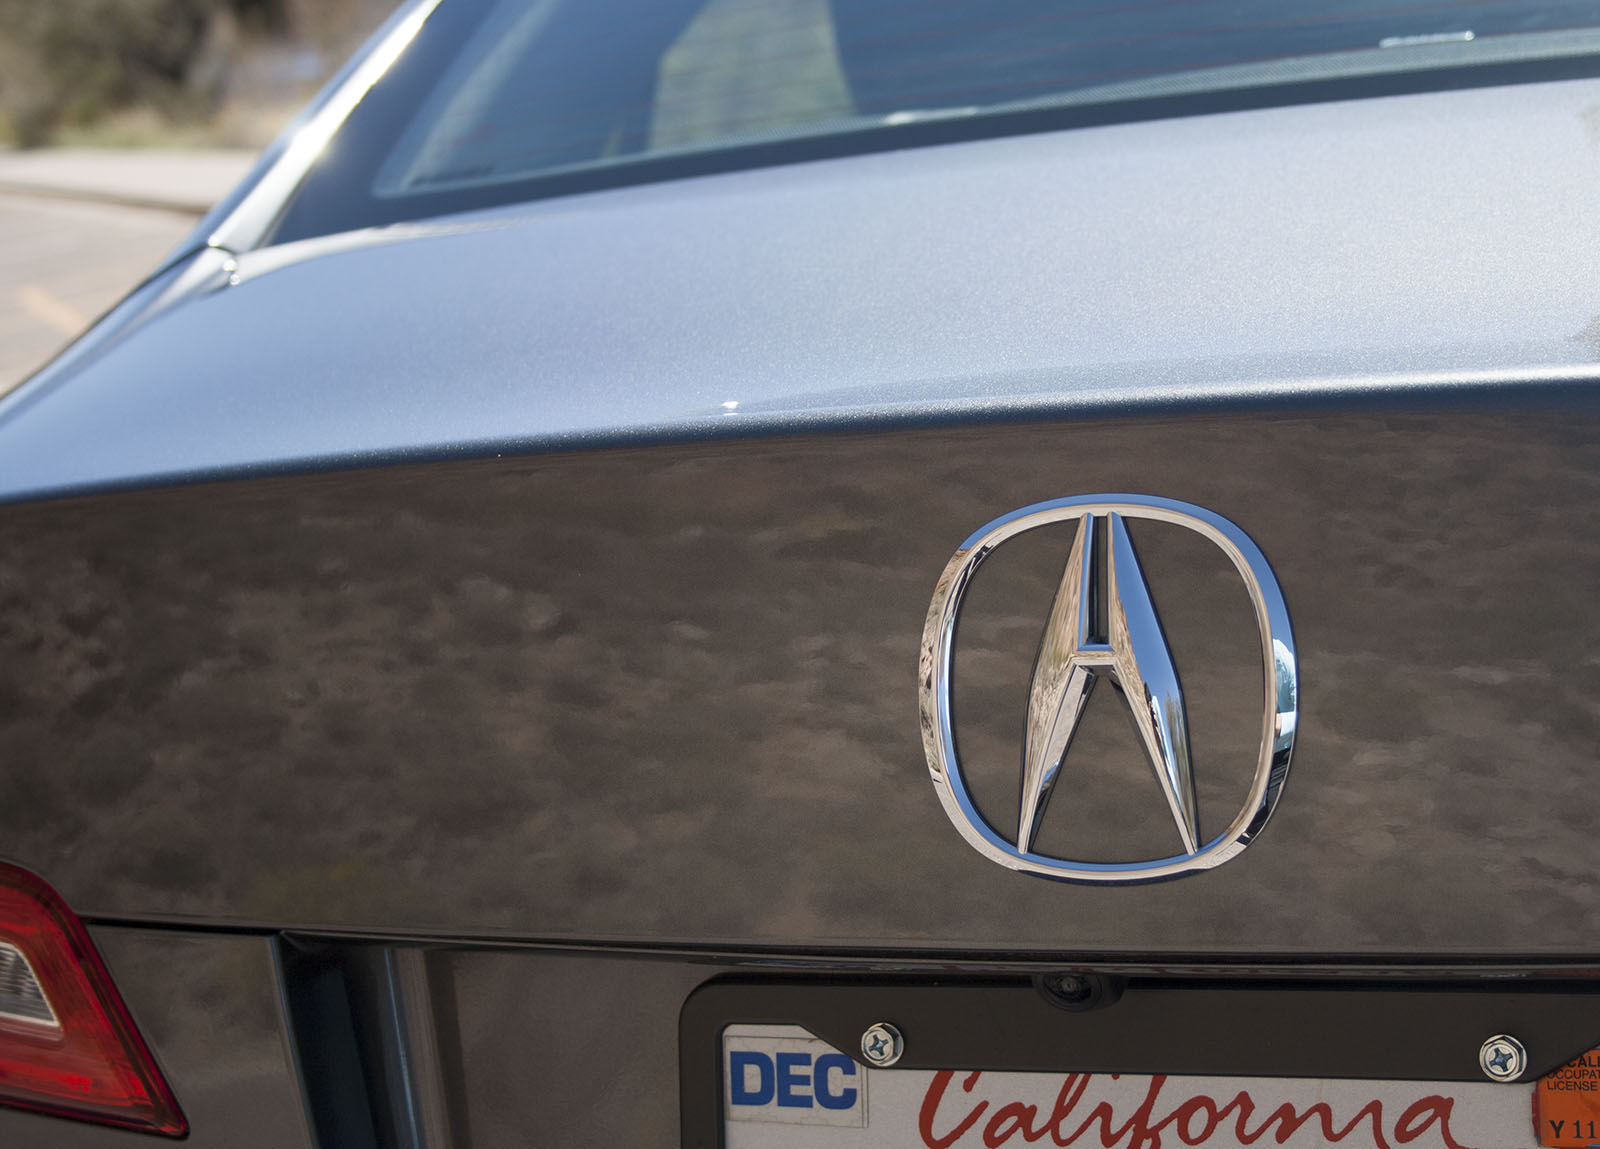 Acura Logo Acura Car Symbol Meaning And History Car Brands Car Logos Meaning And Symbol